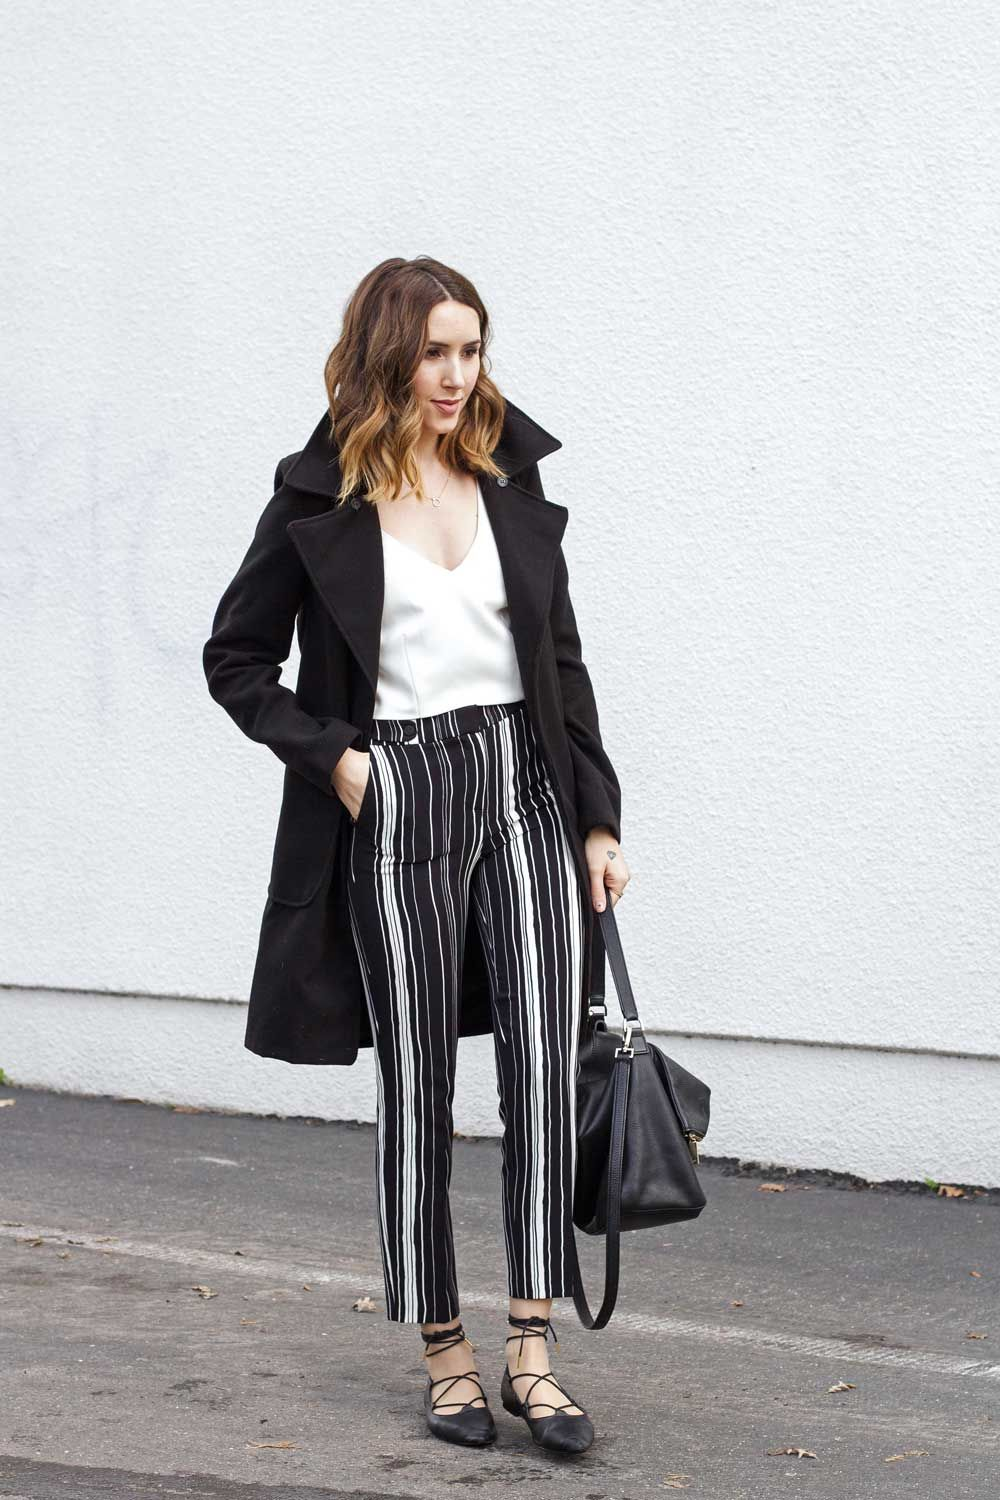 Vertically Stripped Pants